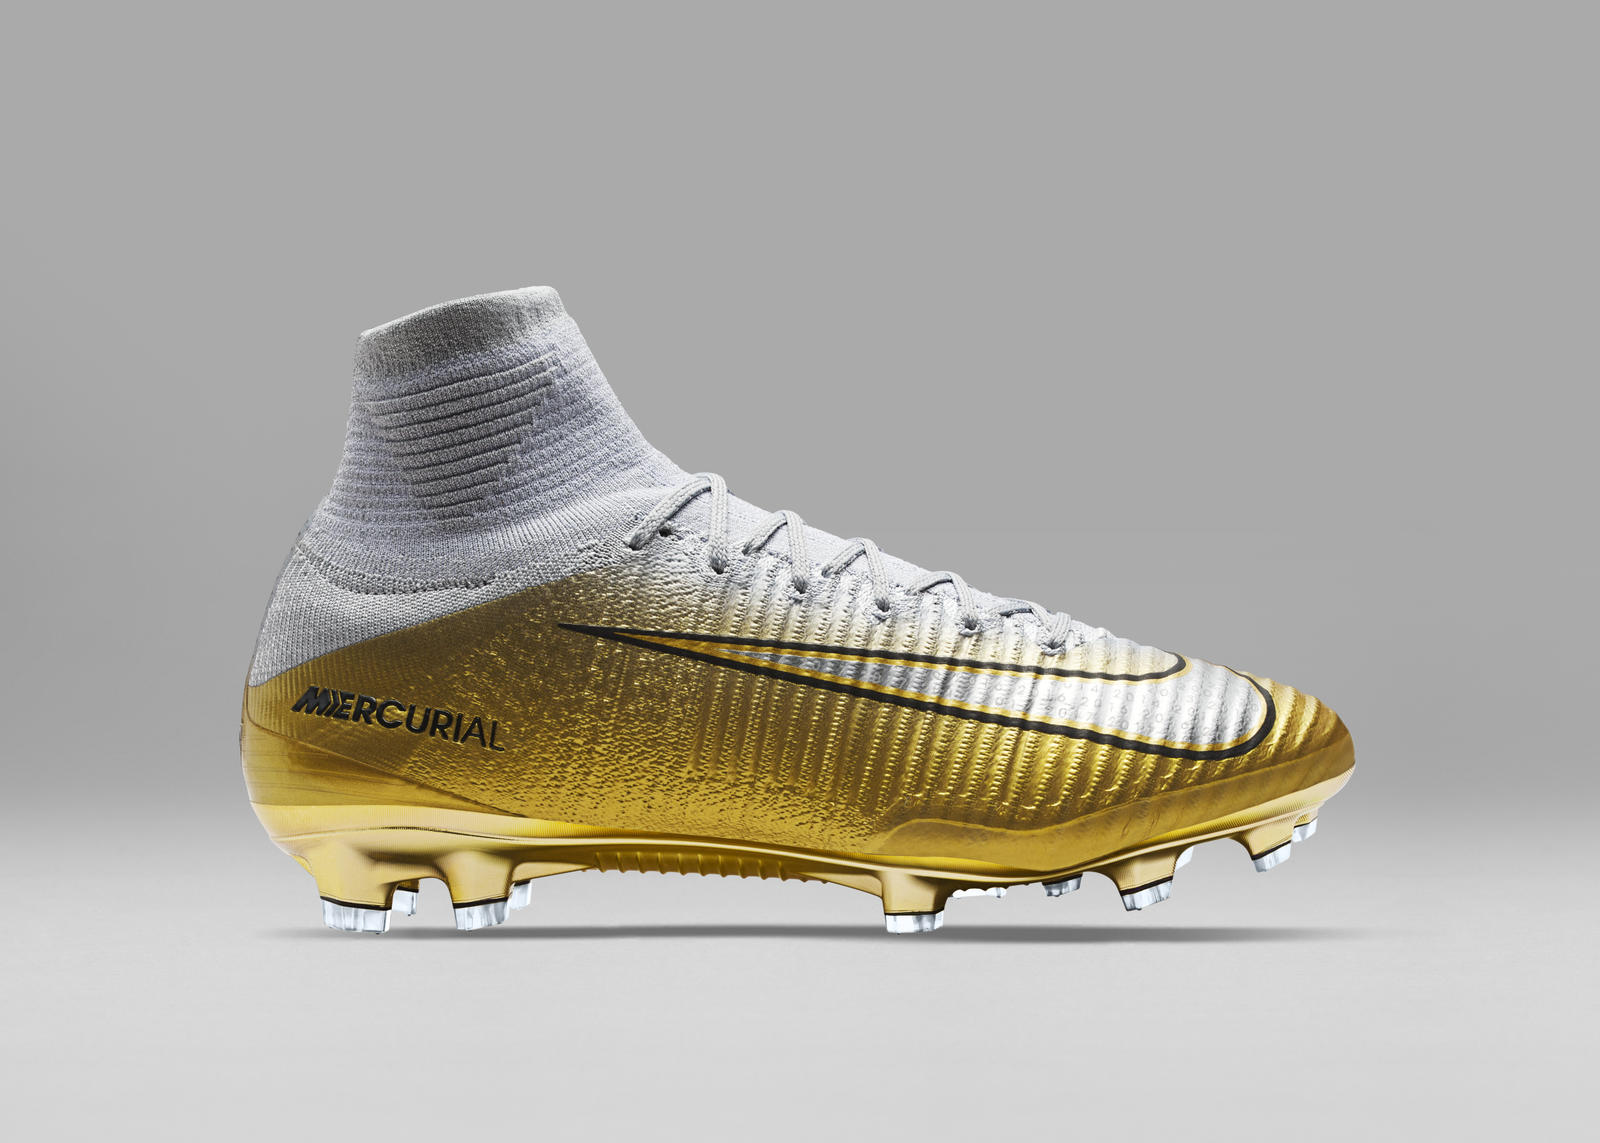 baa090a04c97 Images via Nike. Nike have presented Cristiano Ronaldo with special  Mercurial ...